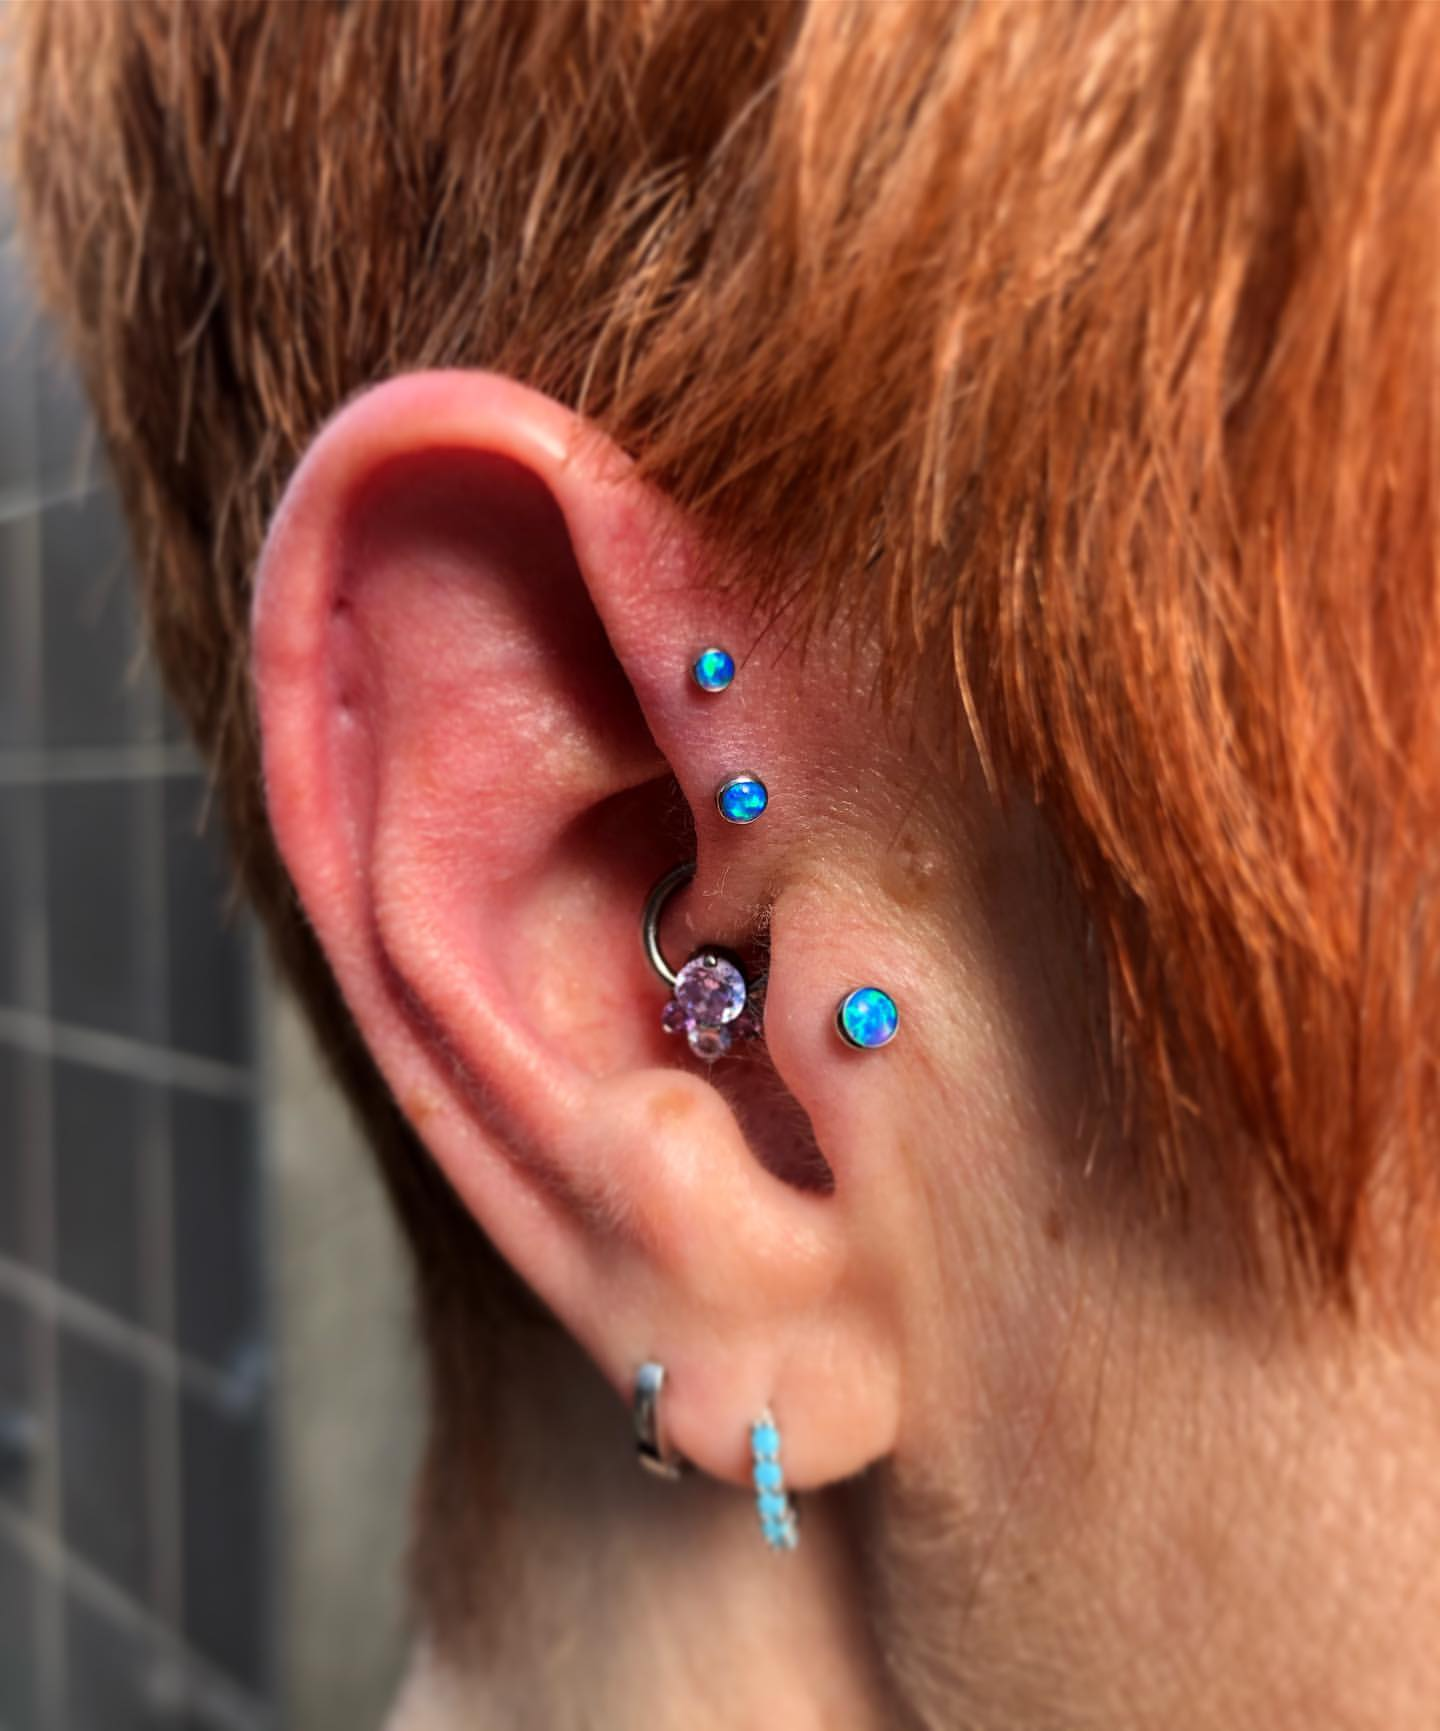 fresh dbl forward helix and tragus